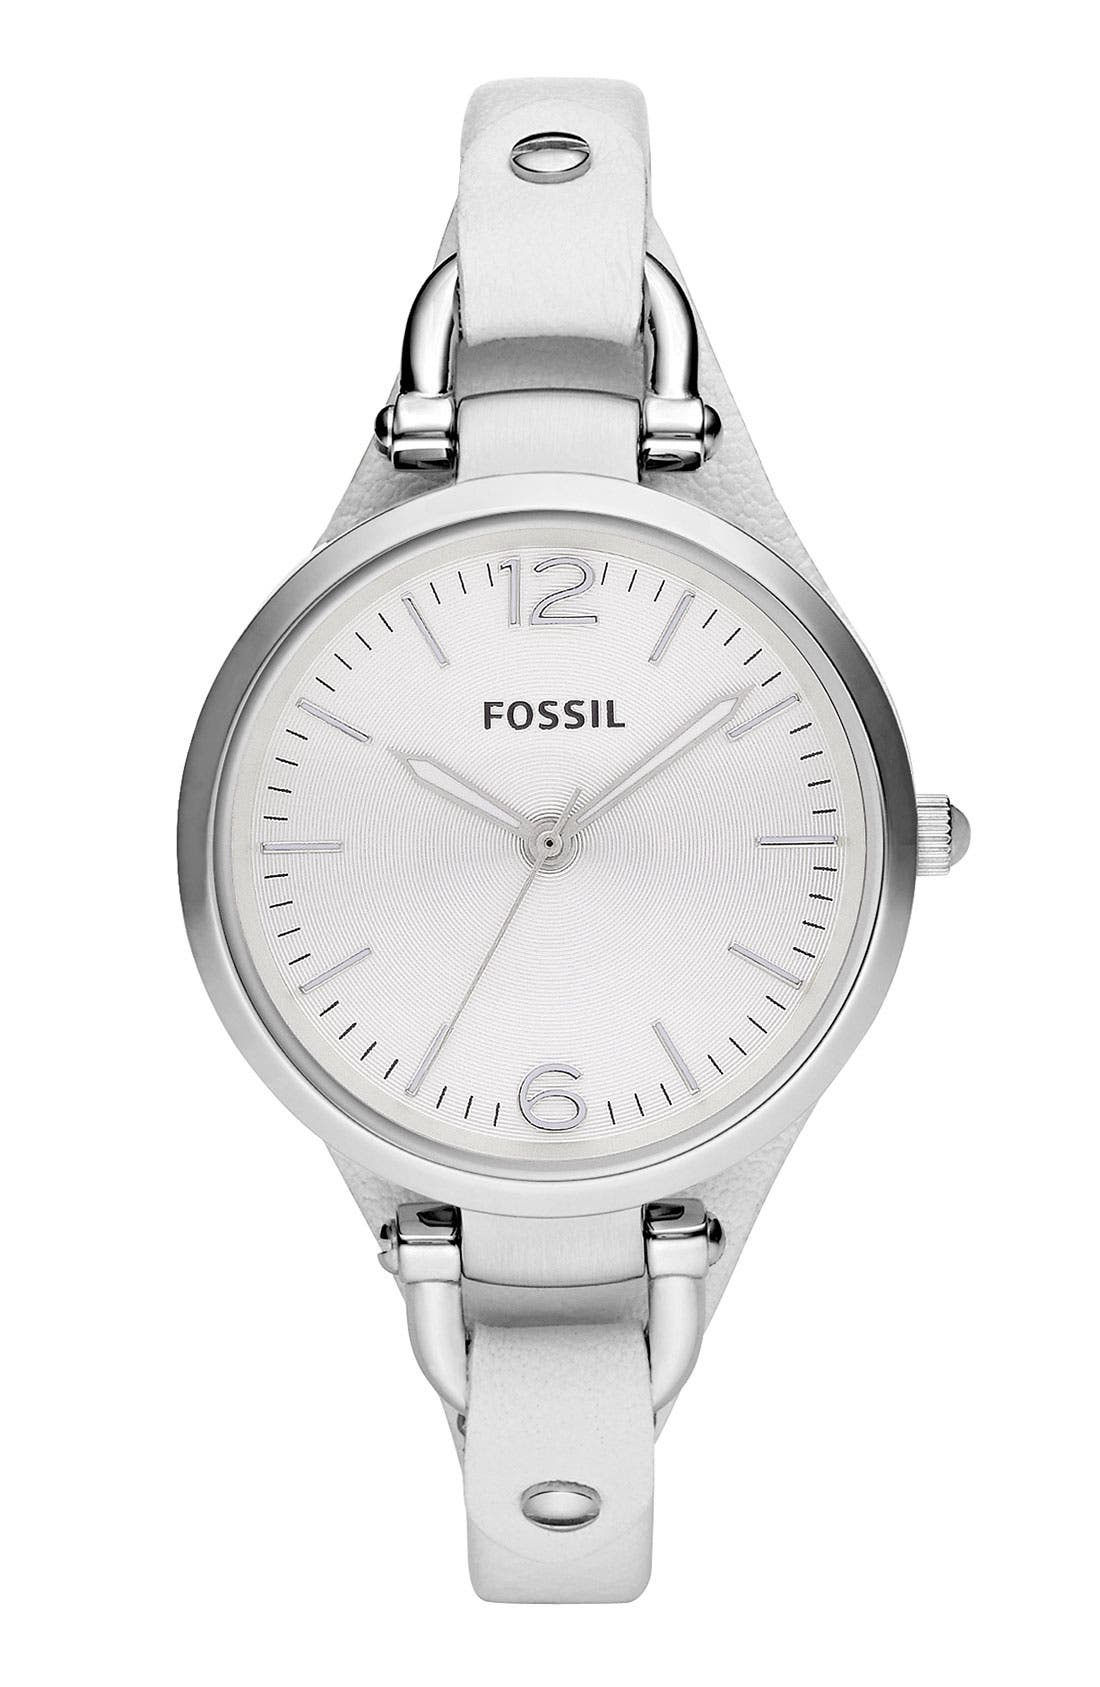 Main Image - Fossil Round Dial Leather Strap Watch, 32mm